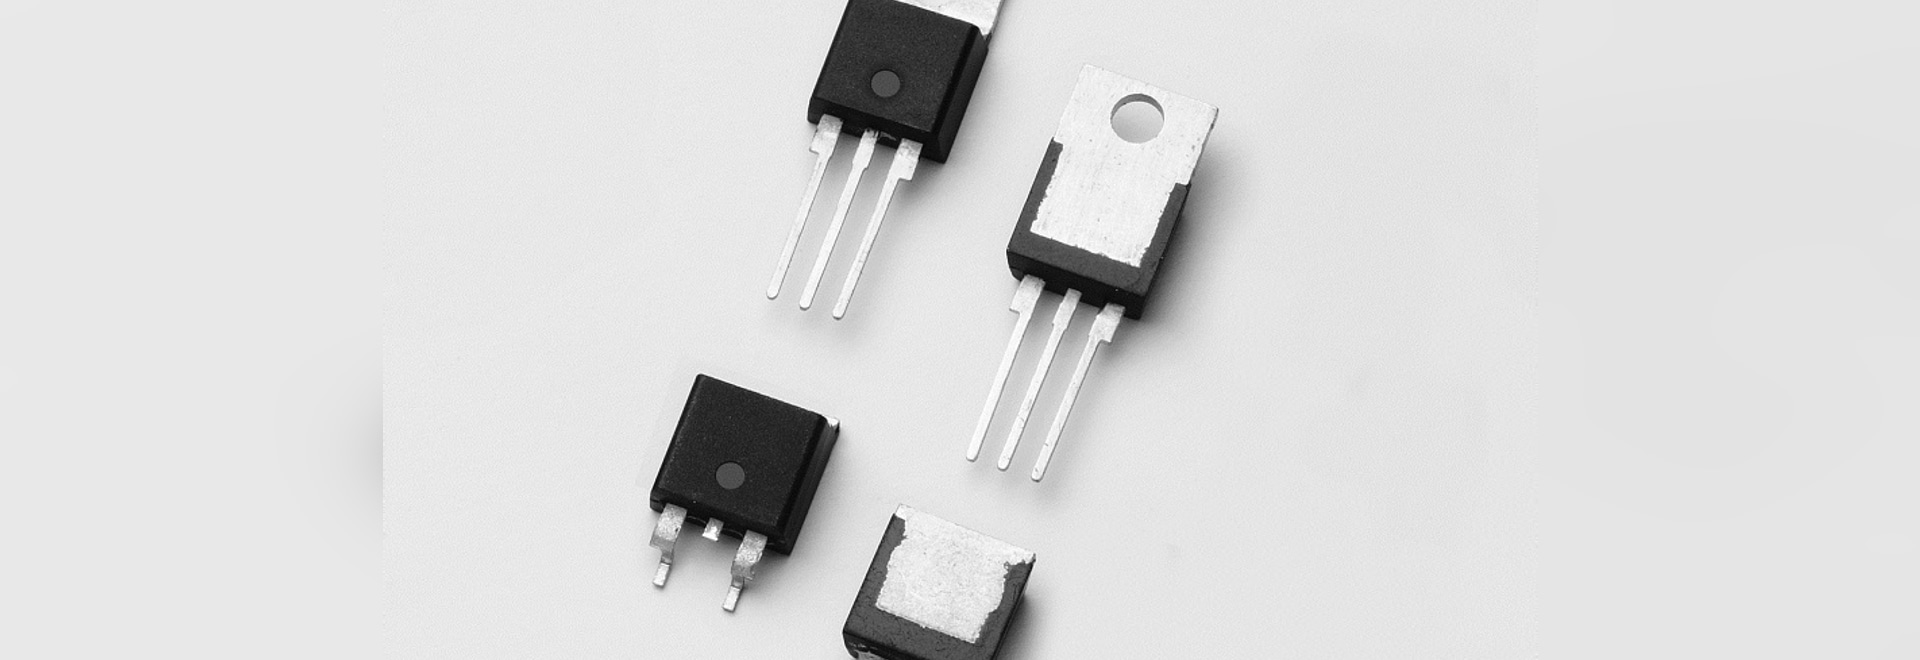 New 16a Scr Thyristor Optimized For Electric Vehicle On Board Charge Applications Evobc